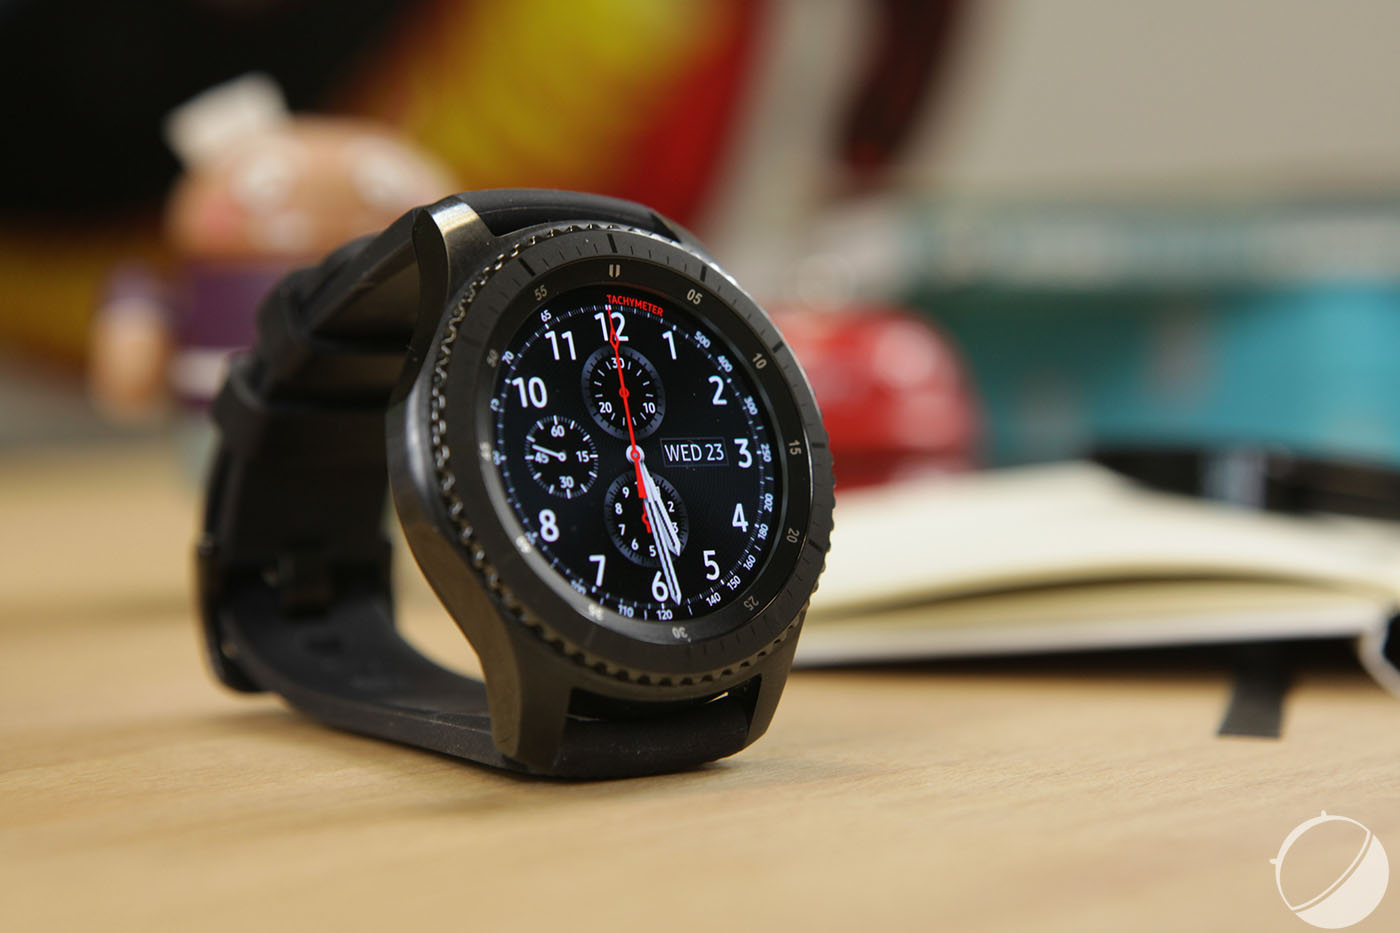 test samsung gear s3 notre avis complet montres bracelet connect s frandroid. Black Bedroom Furniture Sets. Home Design Ideas